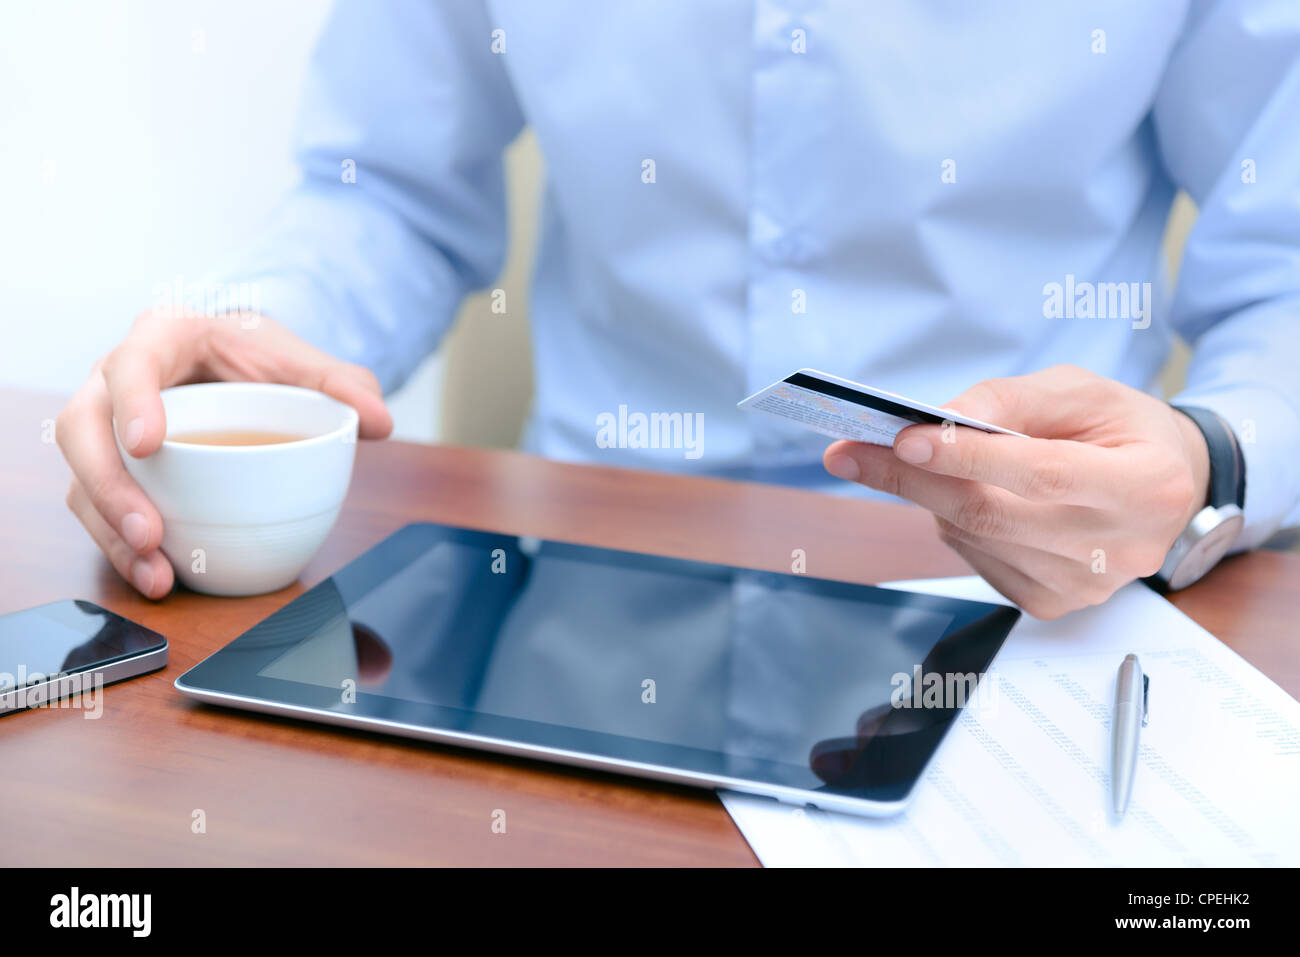 Businessman using a credit card and digital tablet for buying on-line. - Stock Image